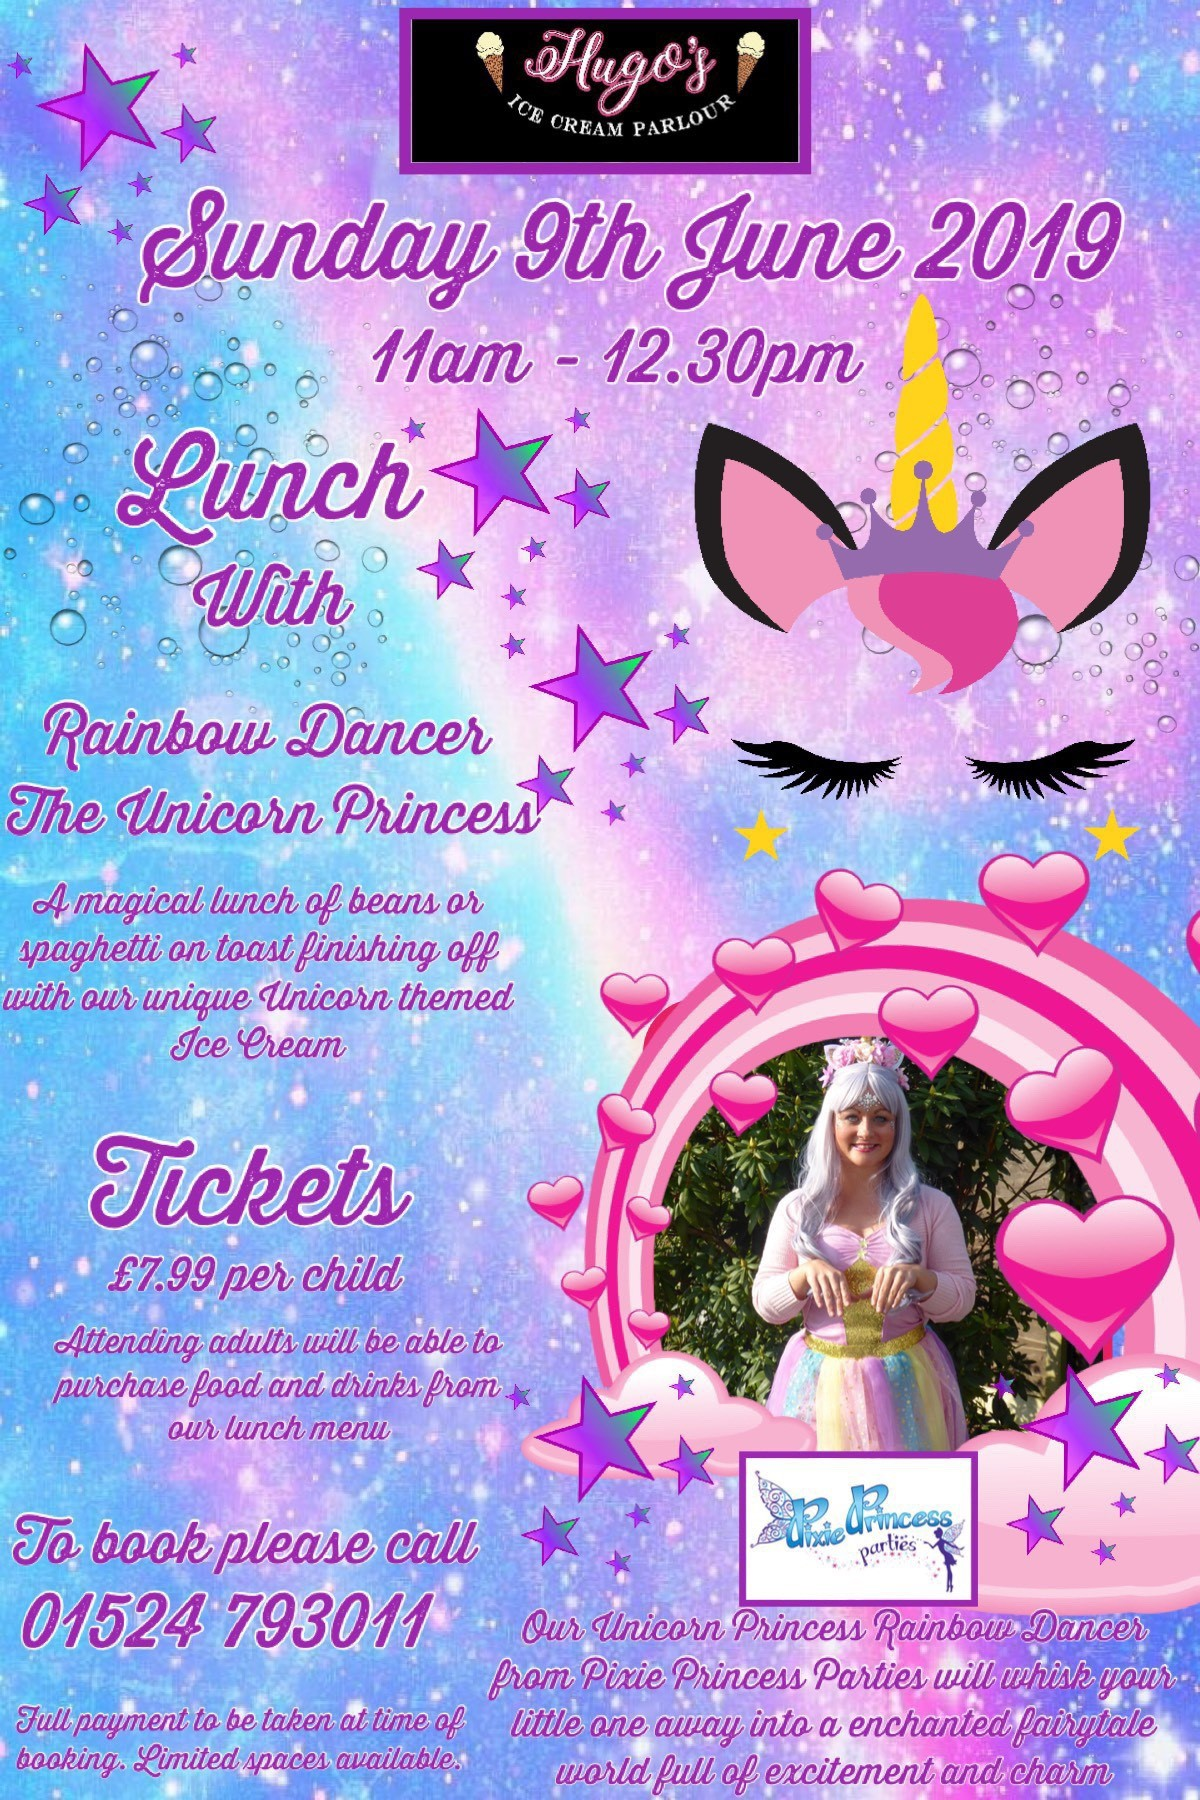 Sunday 9th June     Lunch with Rainbow Dancer our Unicorn